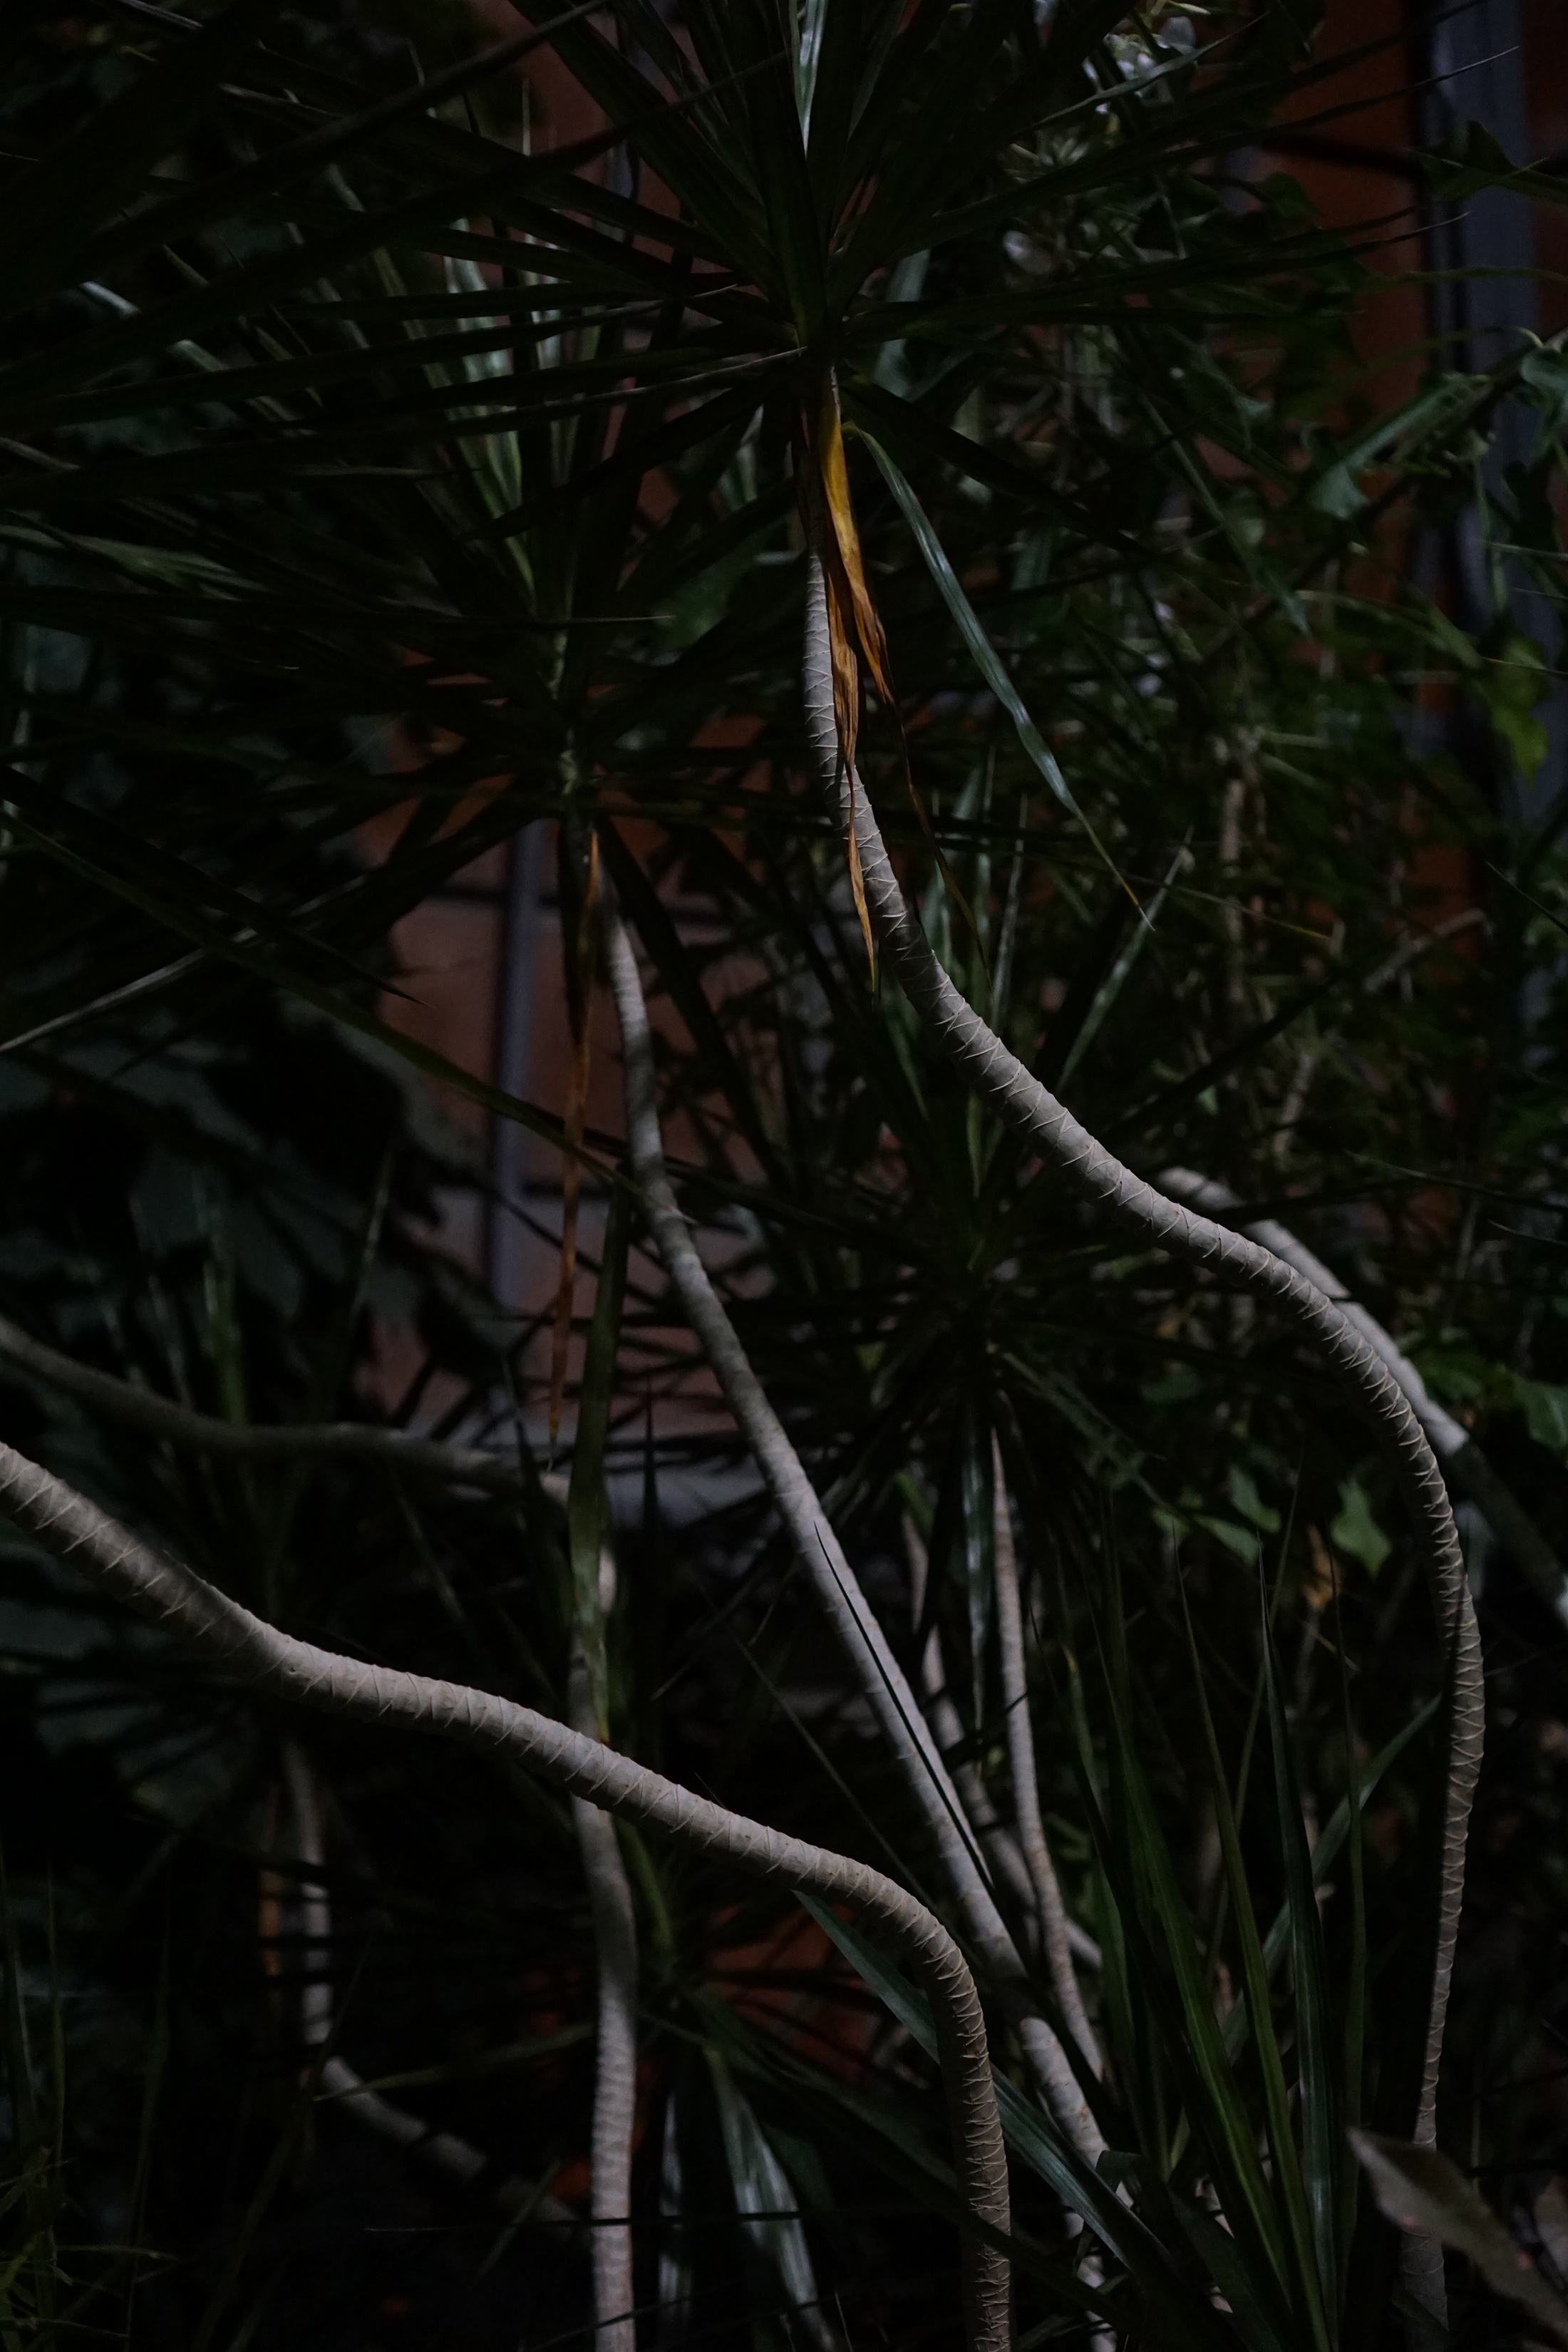 Dracaena branches, Garfield Park Conservatory at night, Chicago / Darker than Green